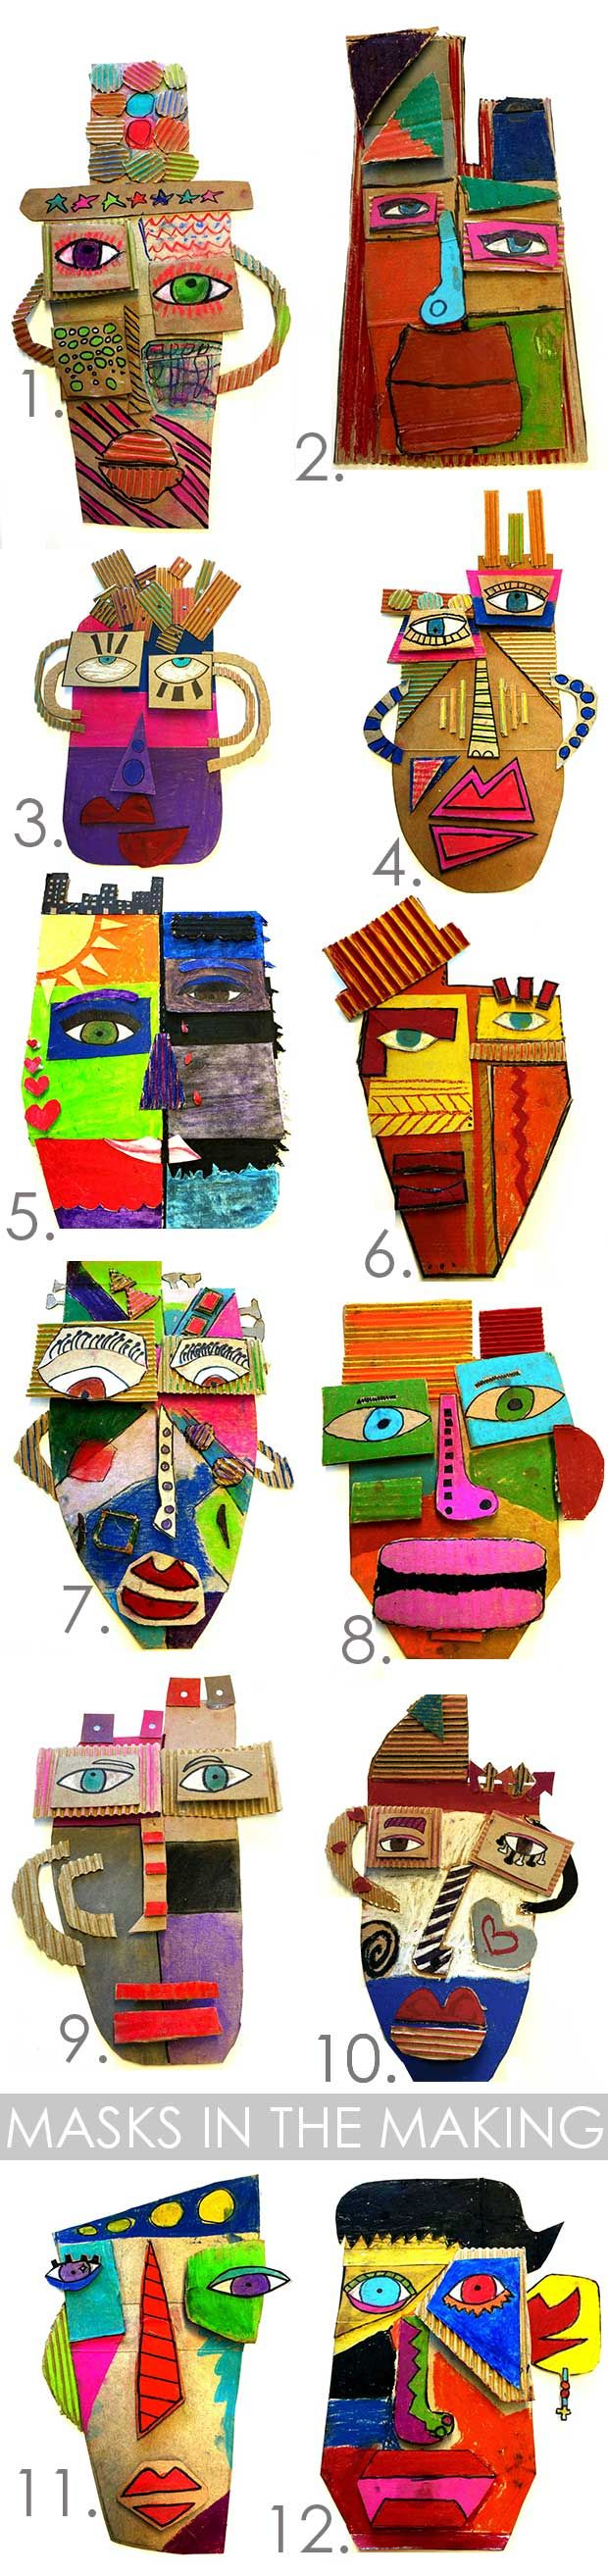 39 best images about masque on pinterest fish costume charles